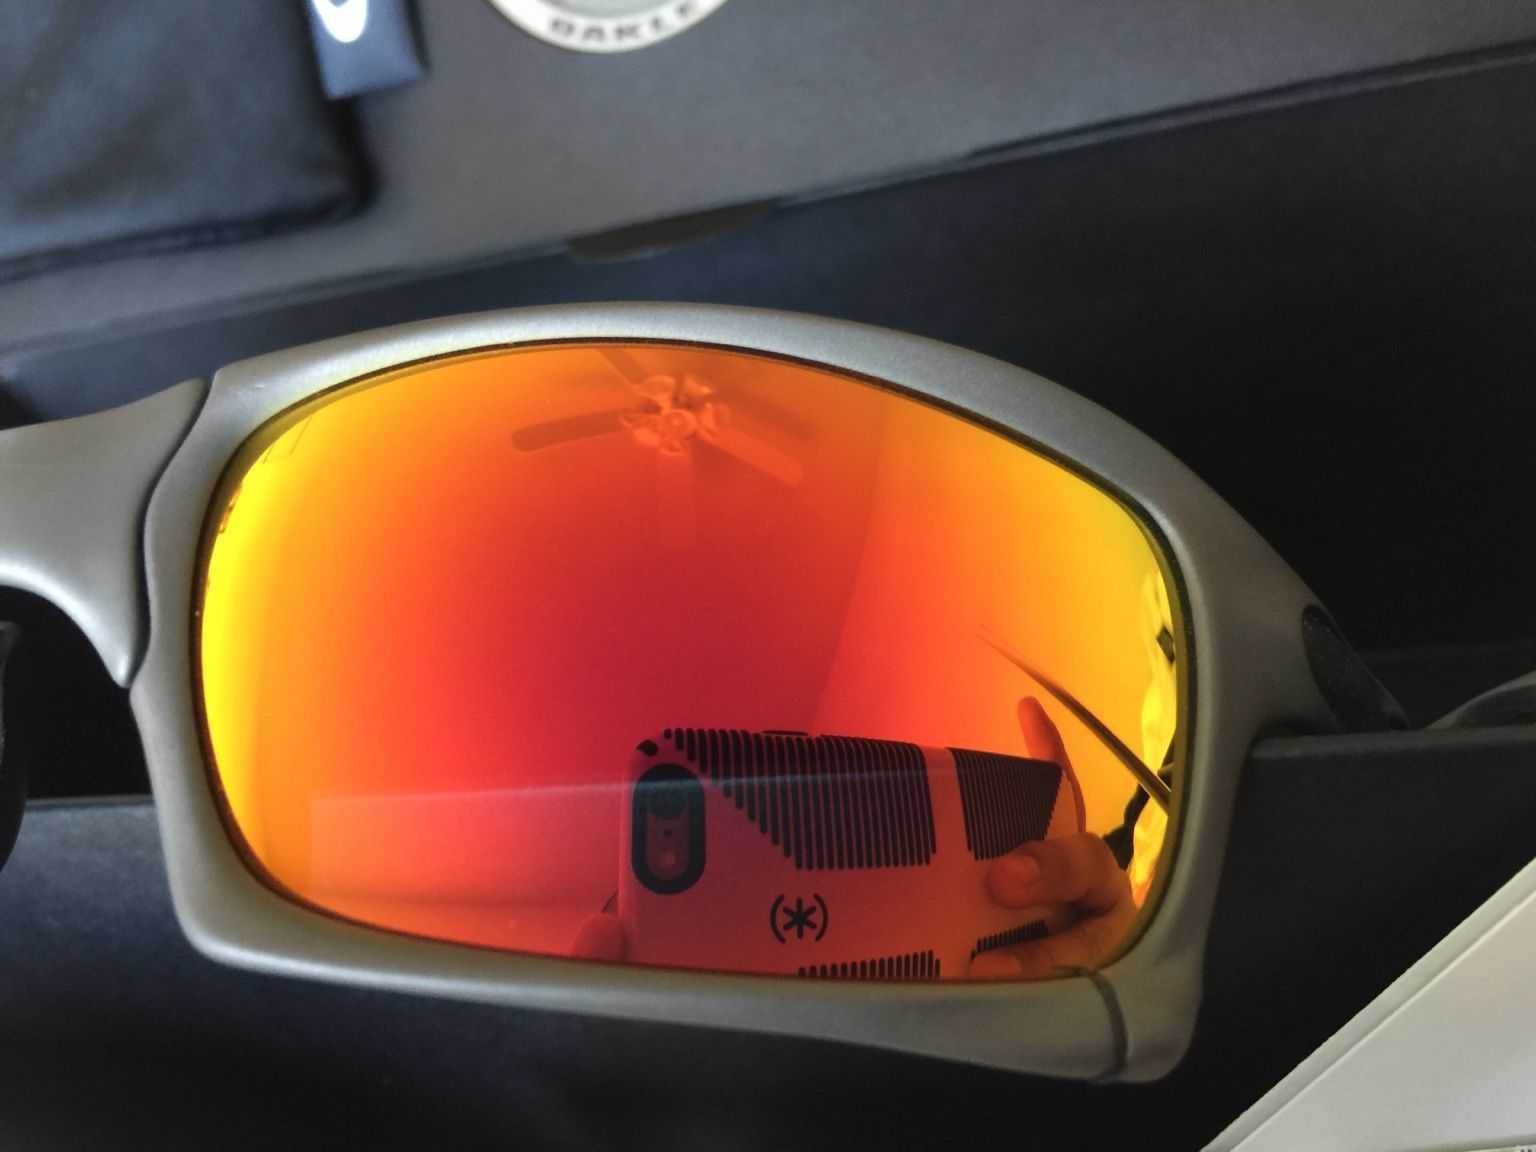 ***GONE*** Mint X-metal/Ruby XS with extra lenses - 640432aac2e5af1fc4a46914605663e9.jpg